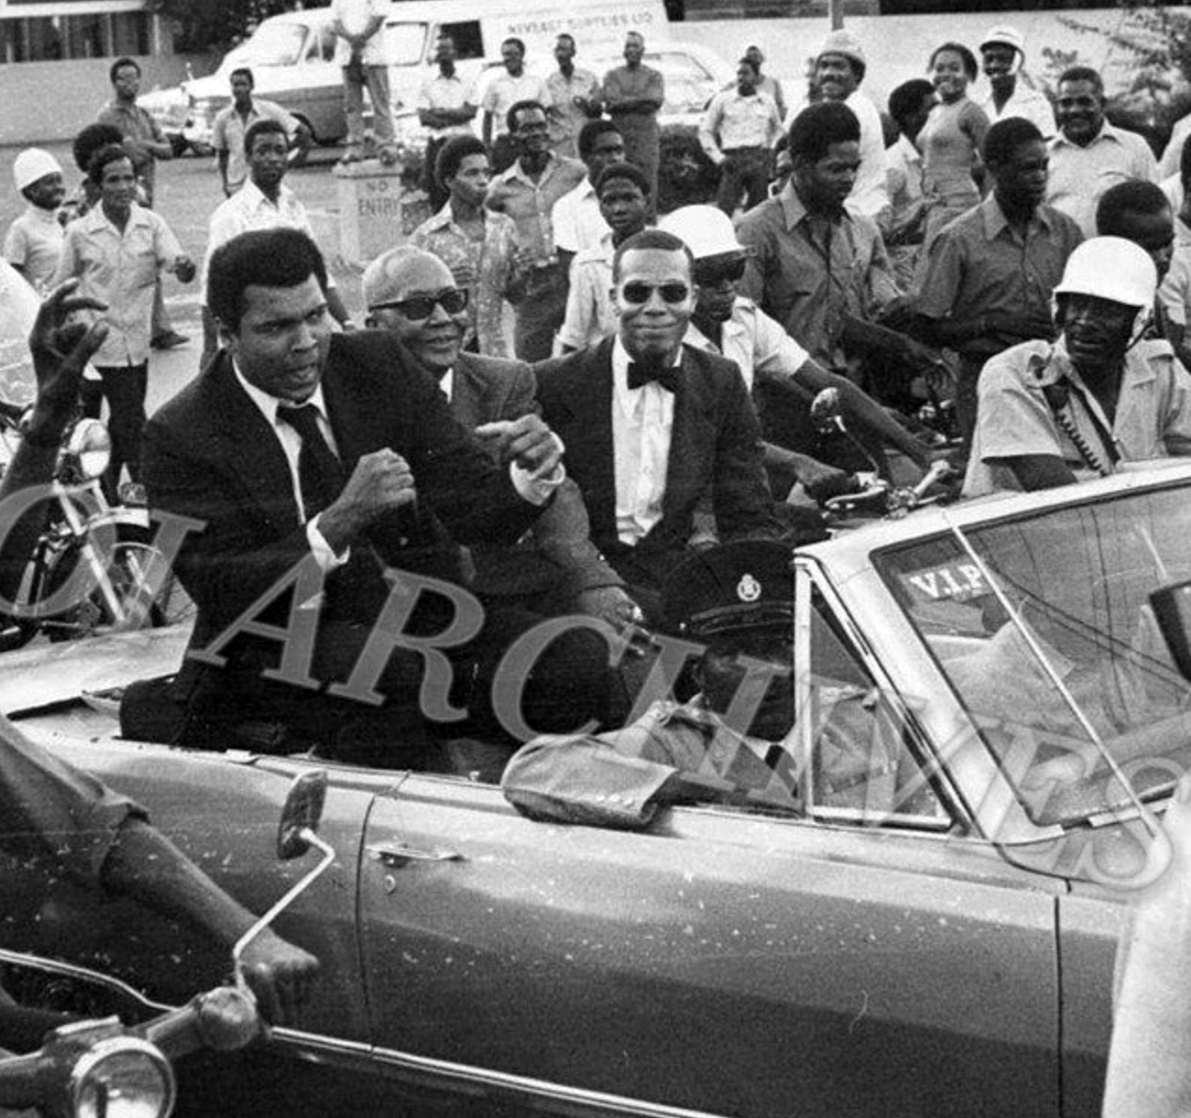 Heavyweight Champ Muhammad Ali, Minister Jam Muhammad ( Brother of The Most Honorable Elijah Muhammad) and The Honorable Minister Louis Farrakhan in Kingston, Jamaica. December 1974. (Via @NOIArchives)